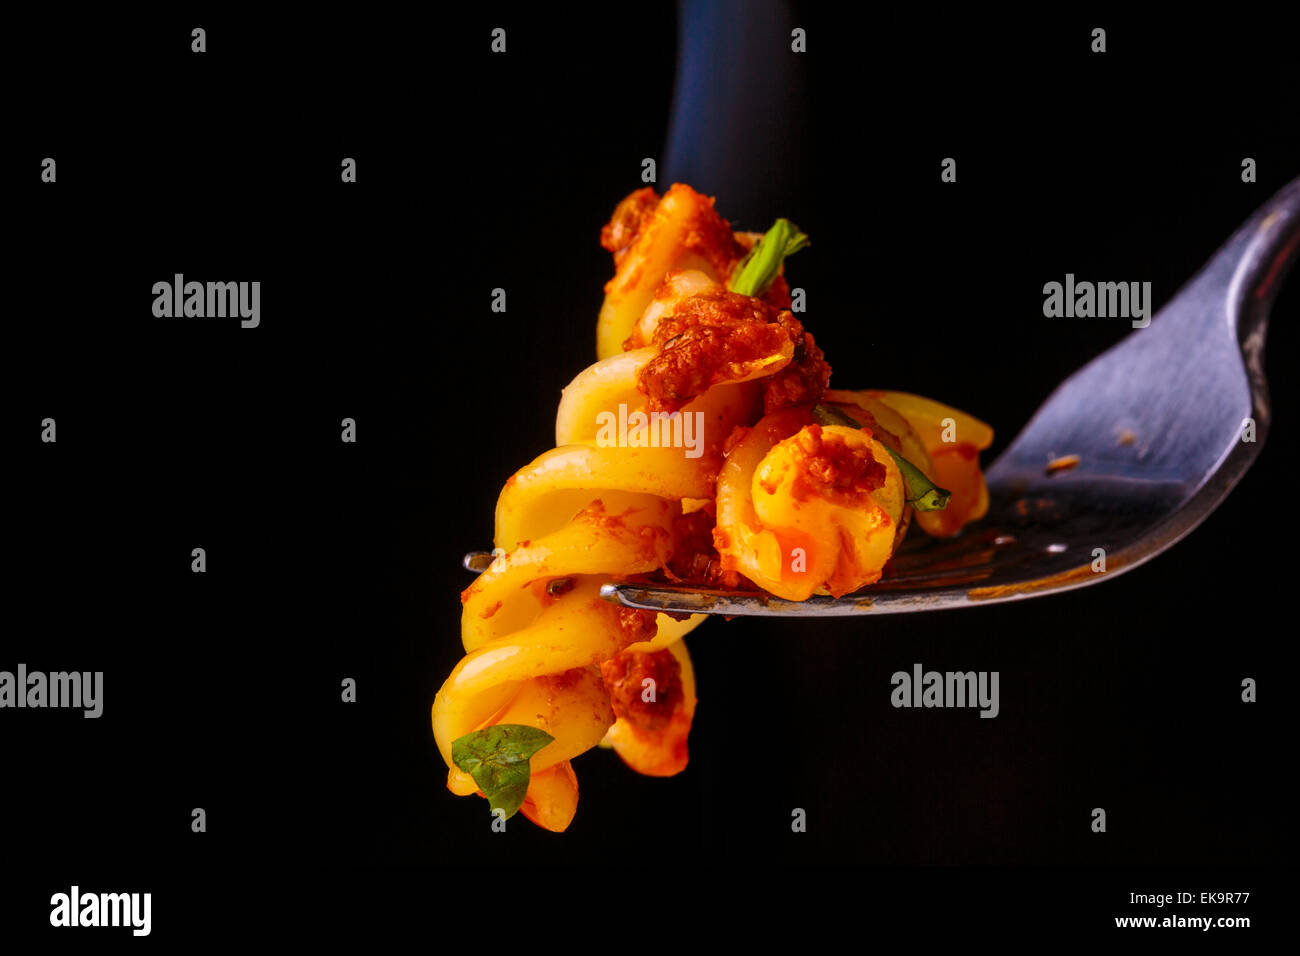 A close up image of steaming hot Fusilli Pasta  on a fork against a black background - Stock Image